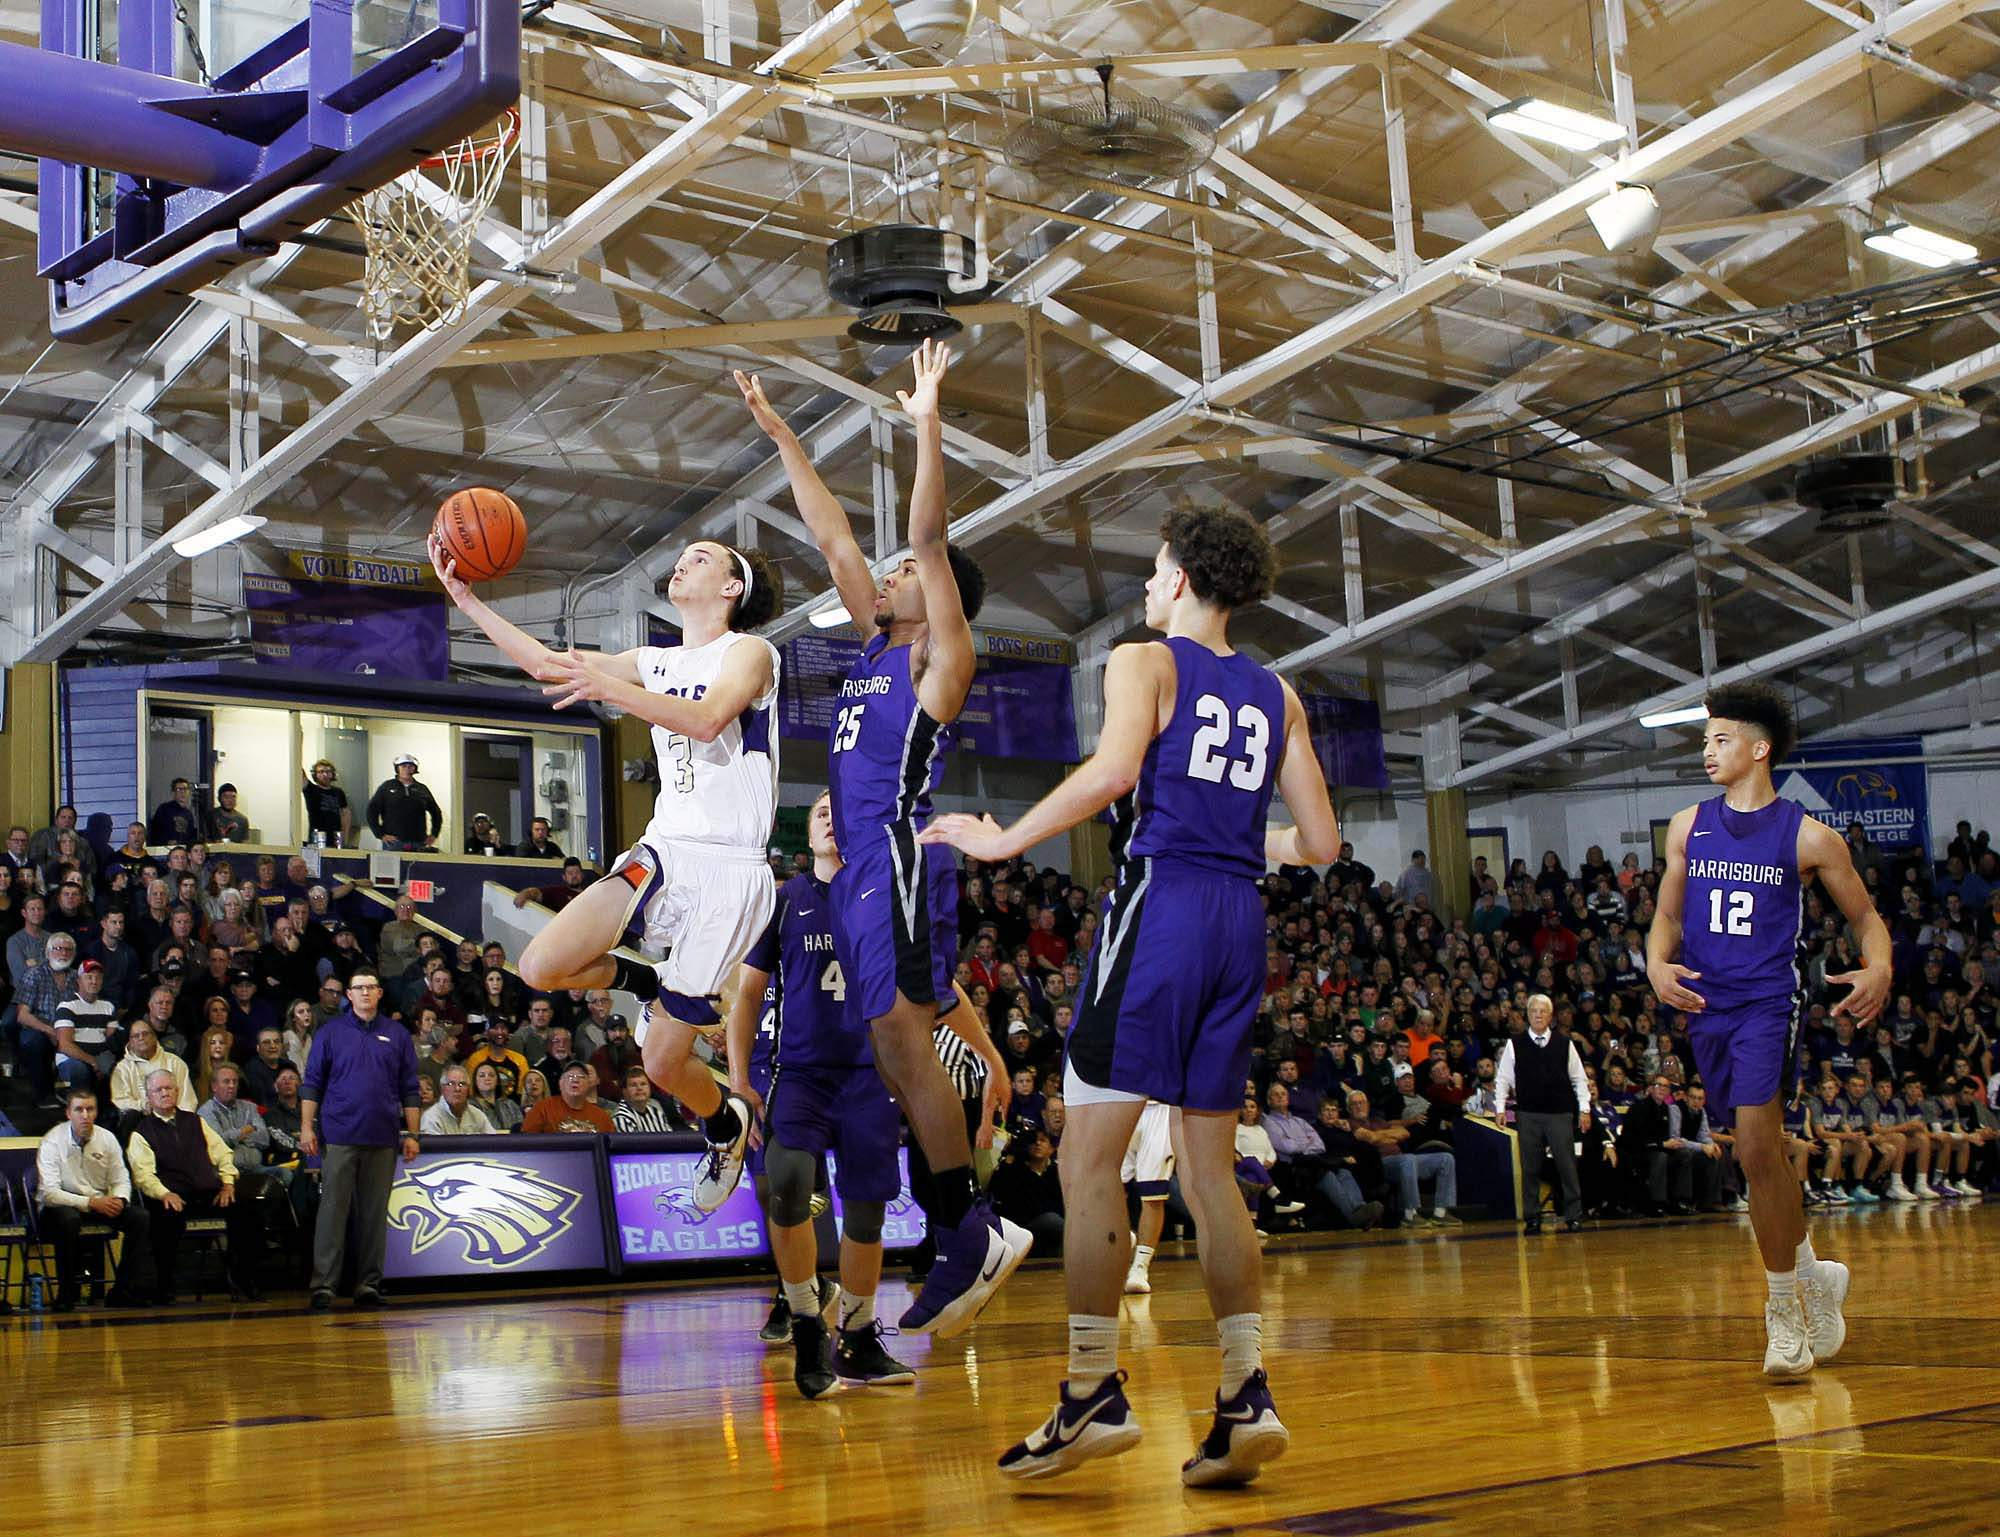 Eldorado's John Meredith goes up for two of his team-high 18 points en route to the EHT's Most Valuable Player Award as the Eagles beat Harrisburg 56-49 Saturday night.